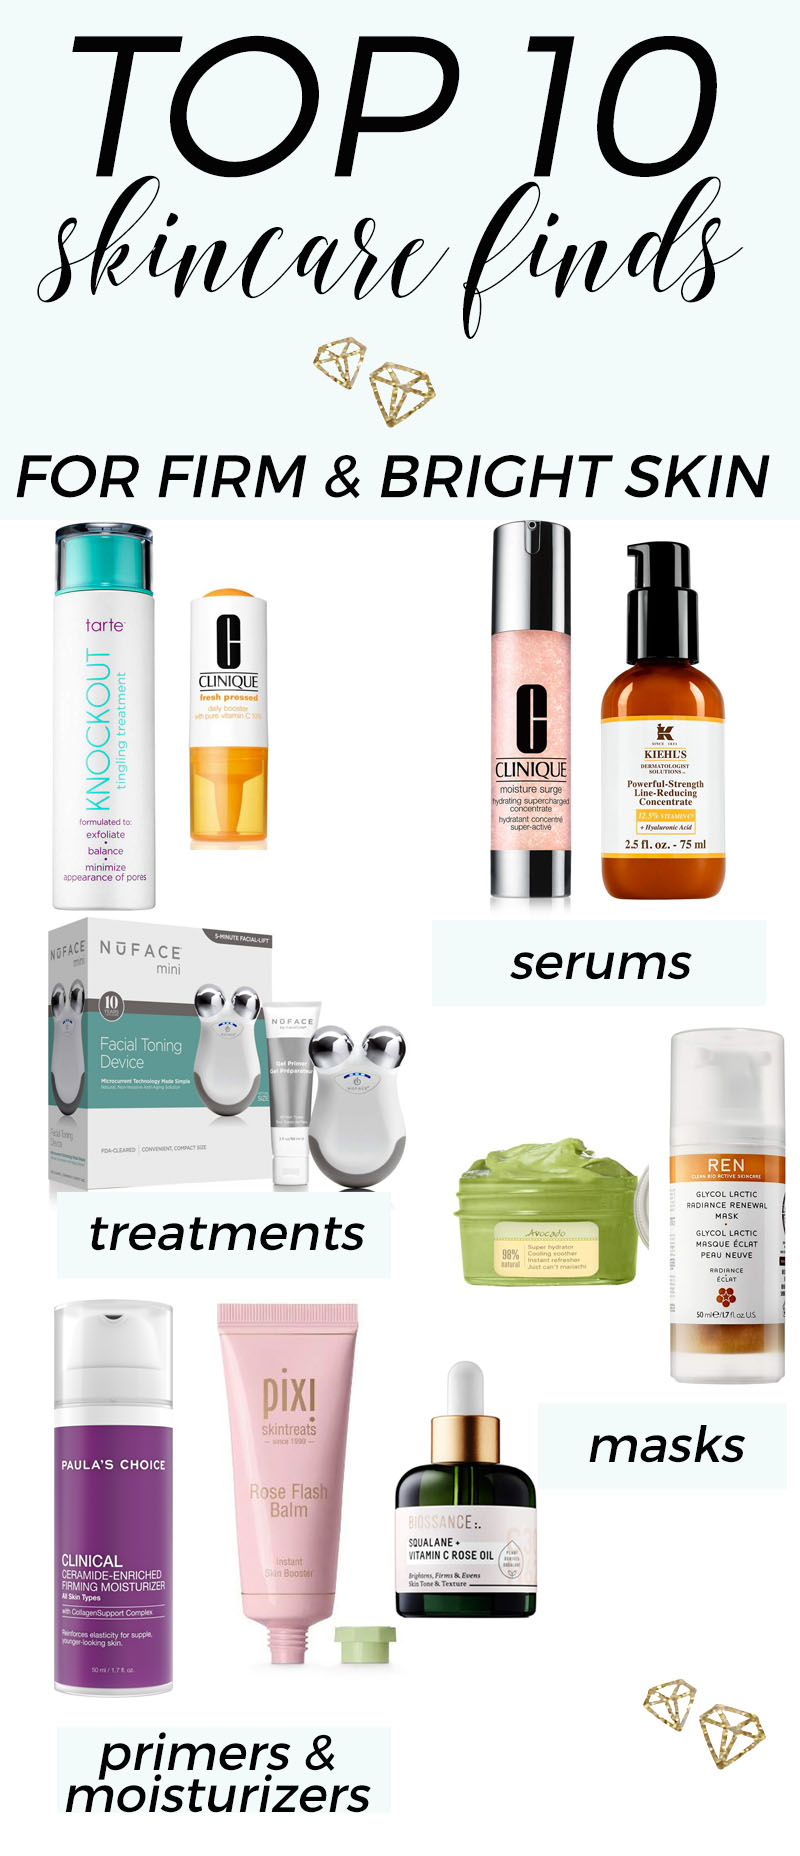 Top 10 Skincare Finds for Firm and Bright Skin